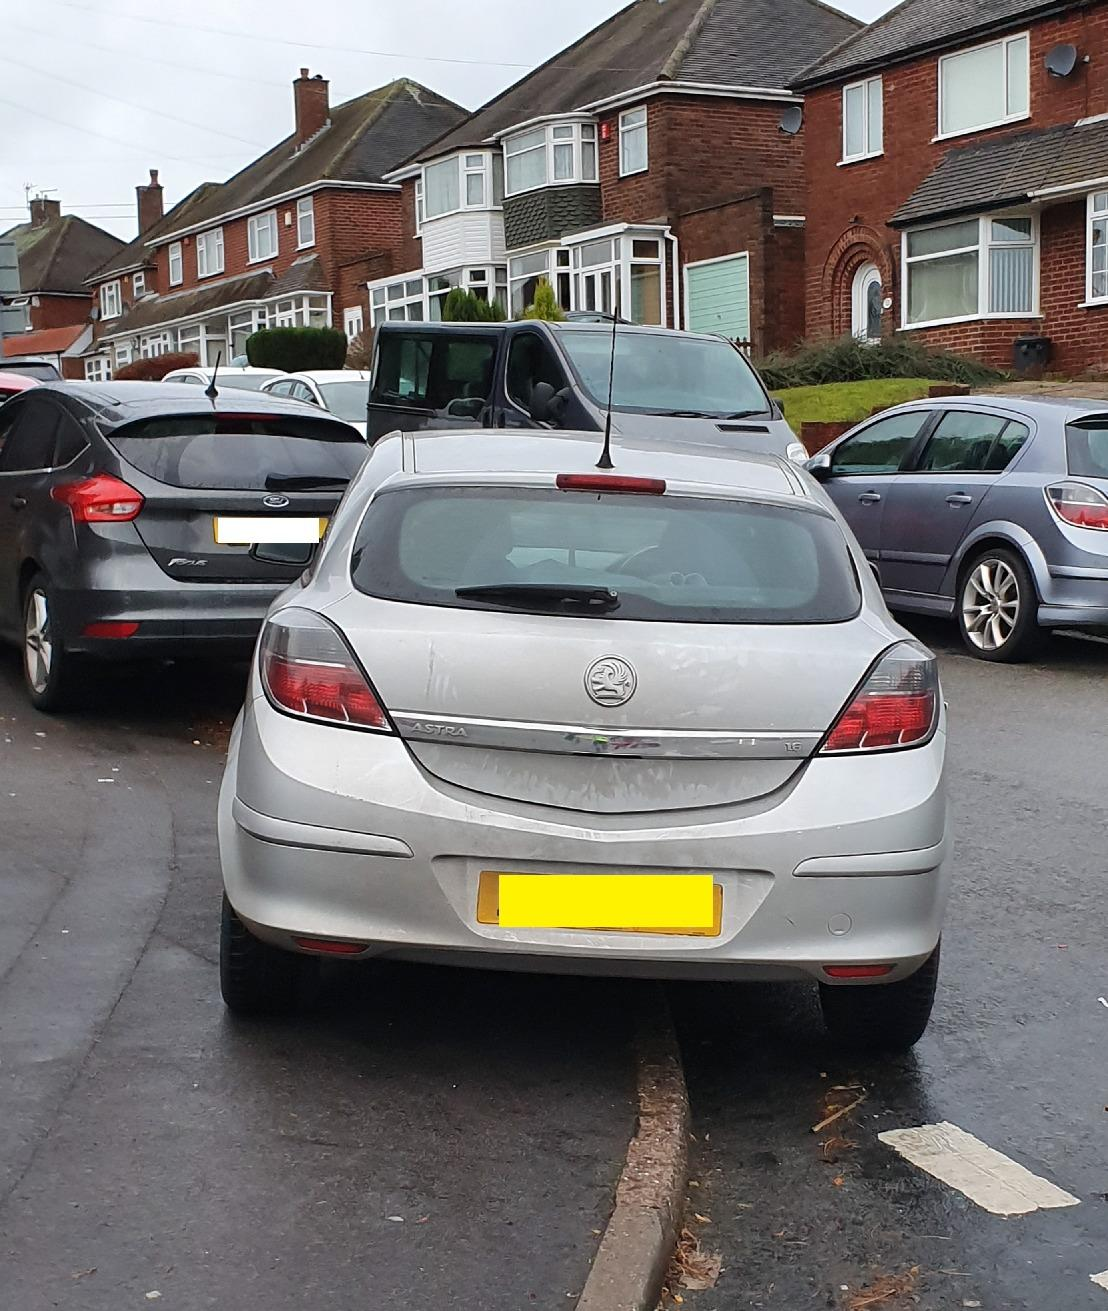 Police Crack Down On Bad Parking Around Perryfields Primary